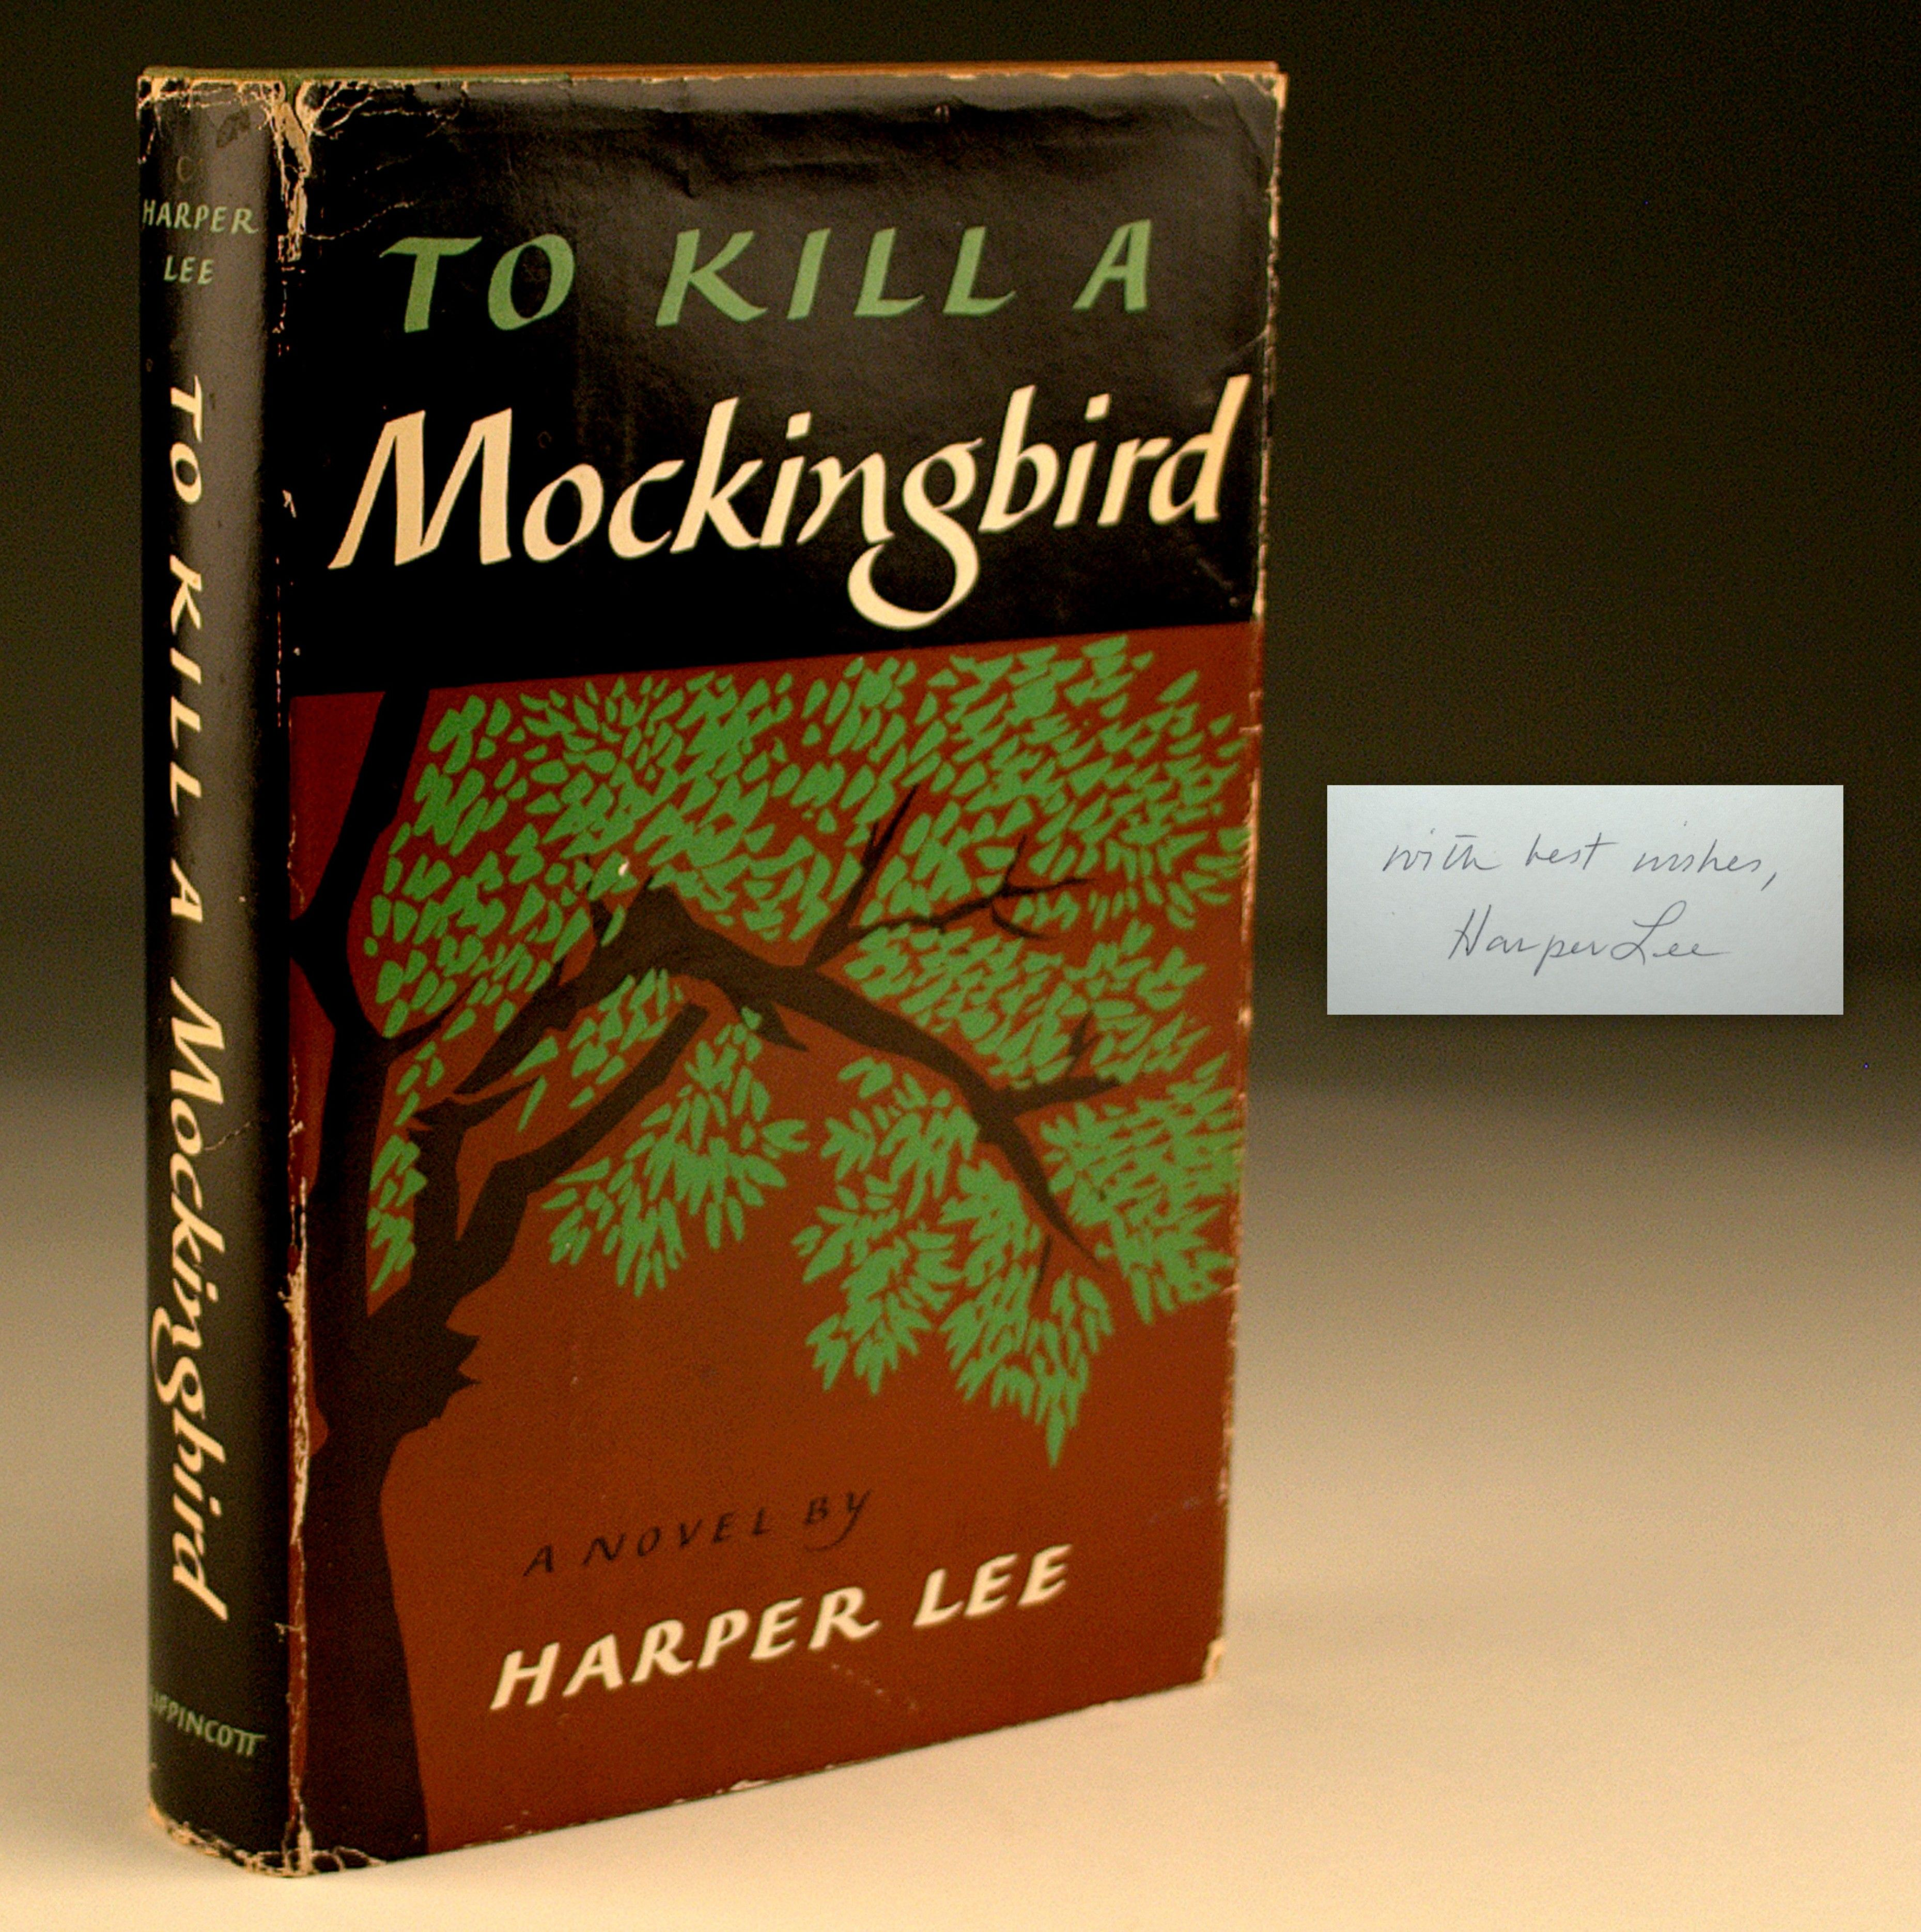 Harper Lee, To Kill a Mockingbird (Signed, First Edition)